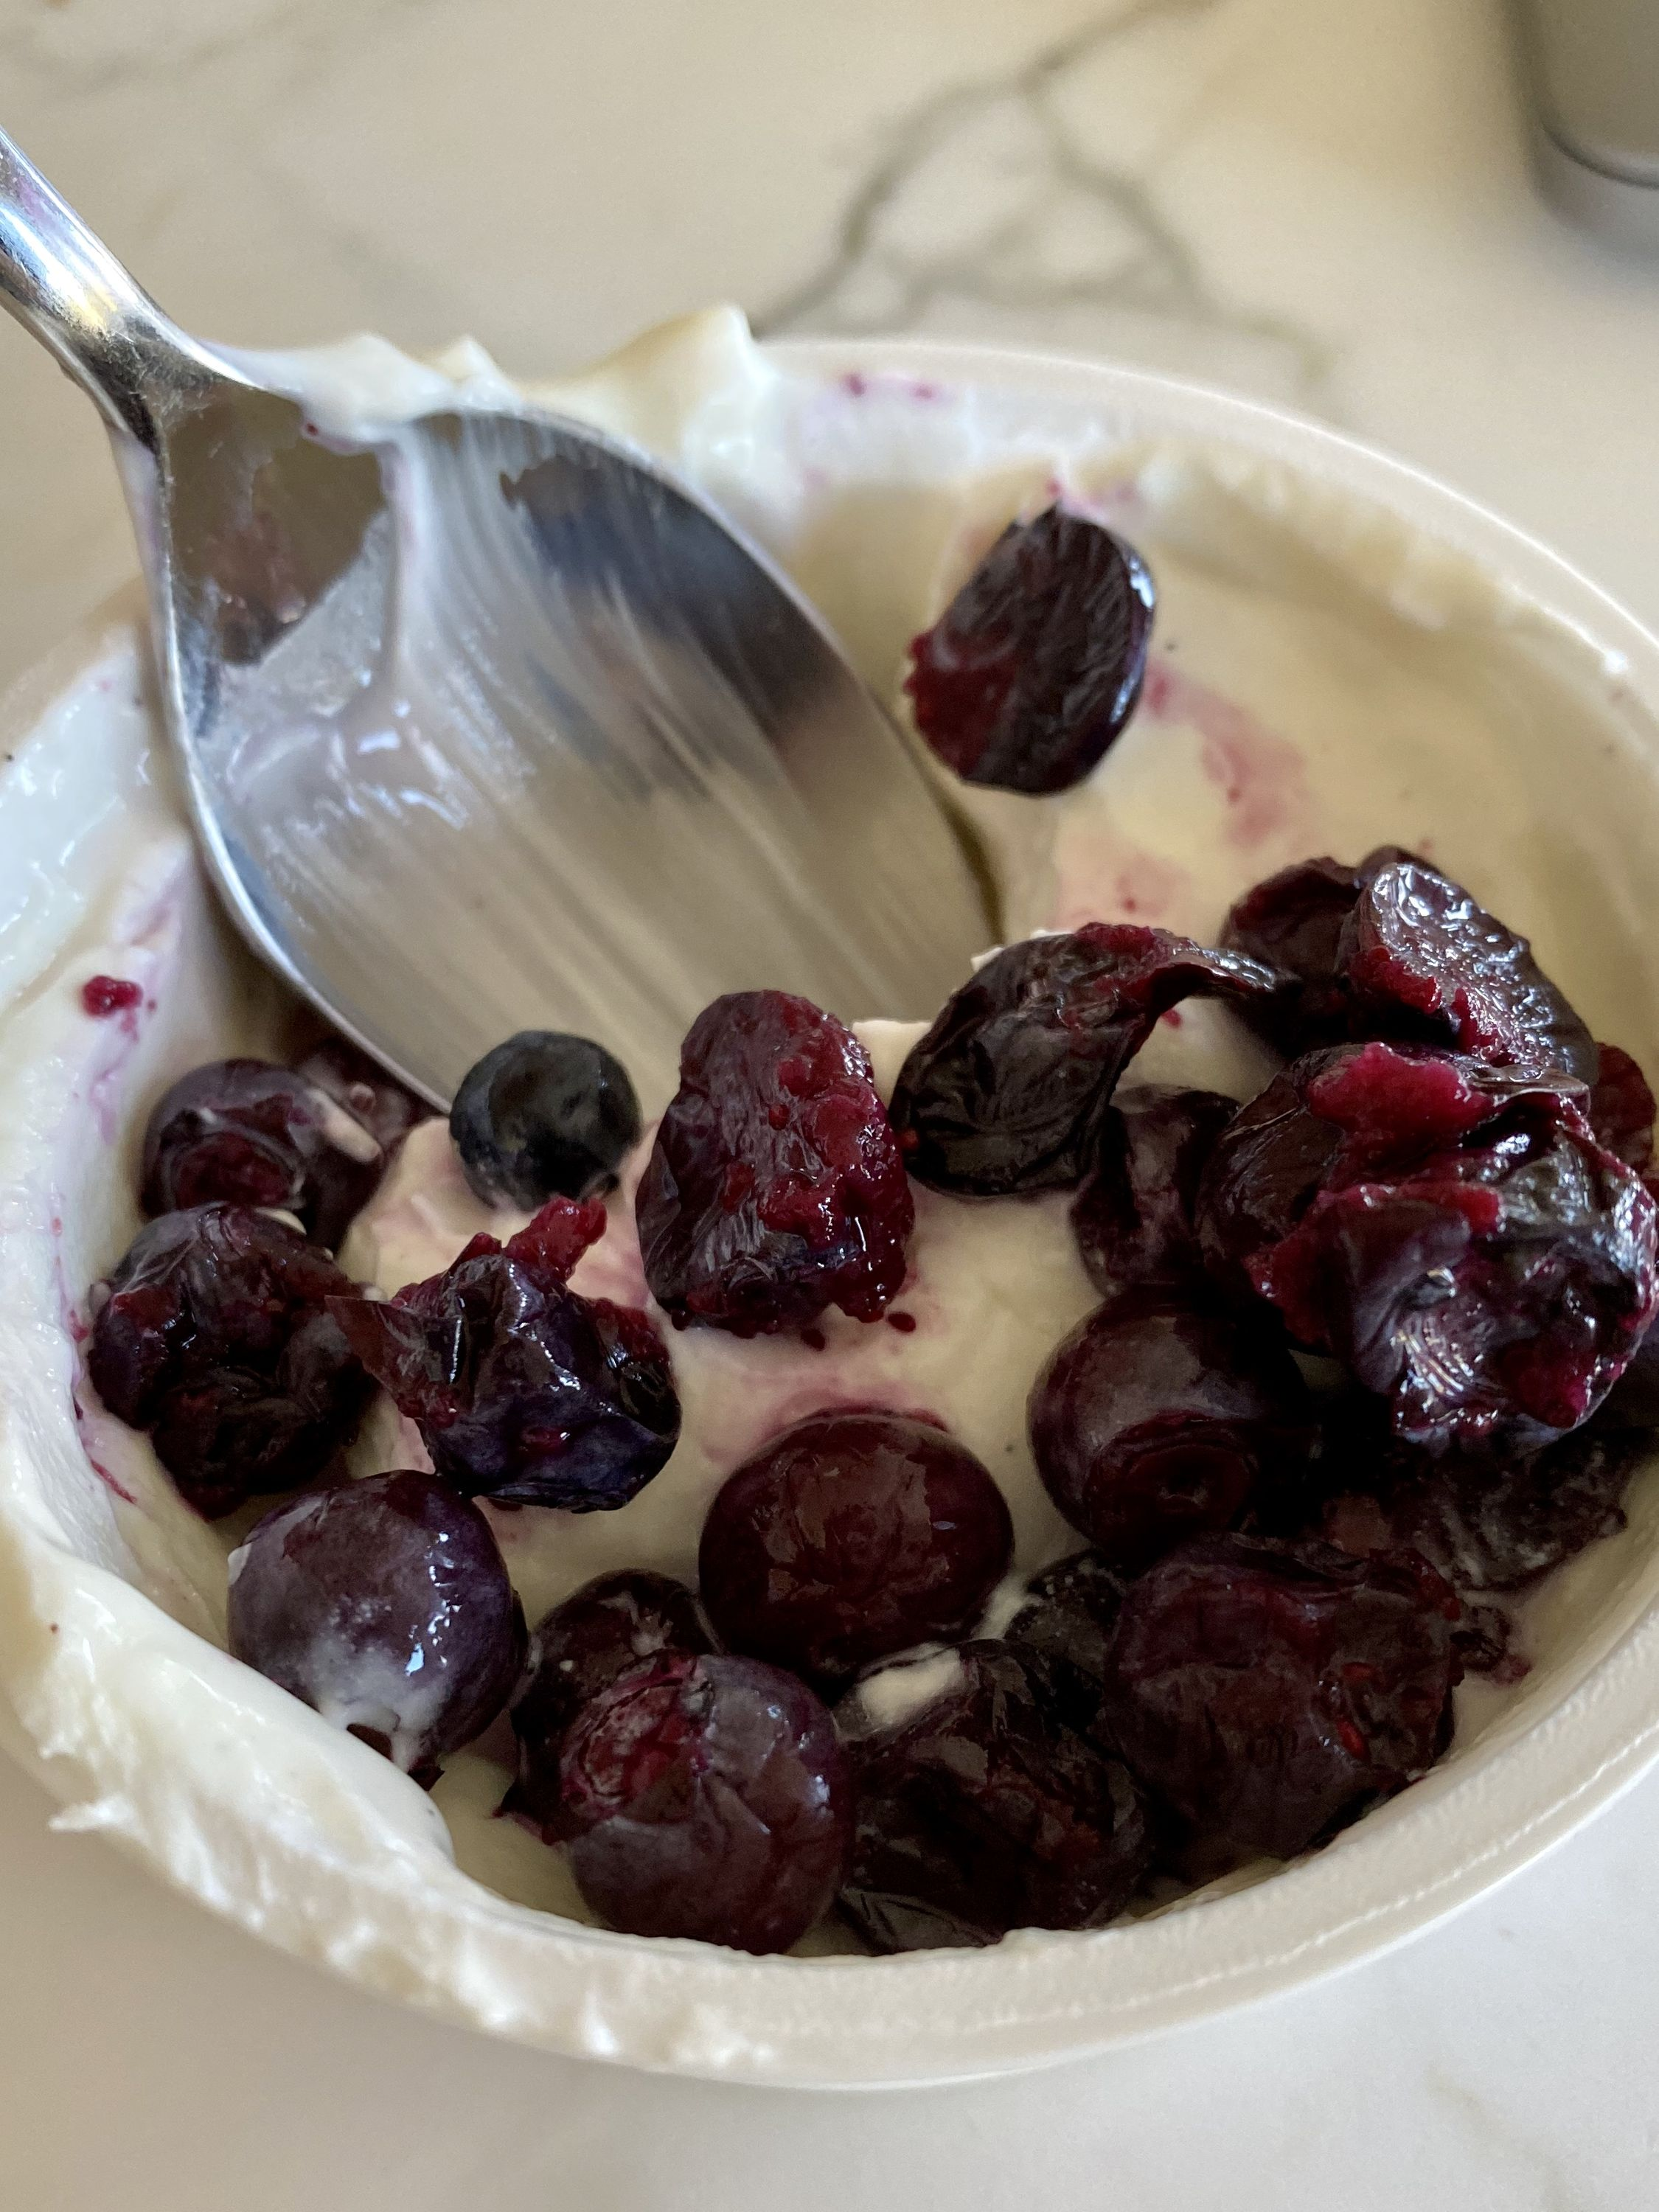 Yogurt with lacto-fermented blueberries on top